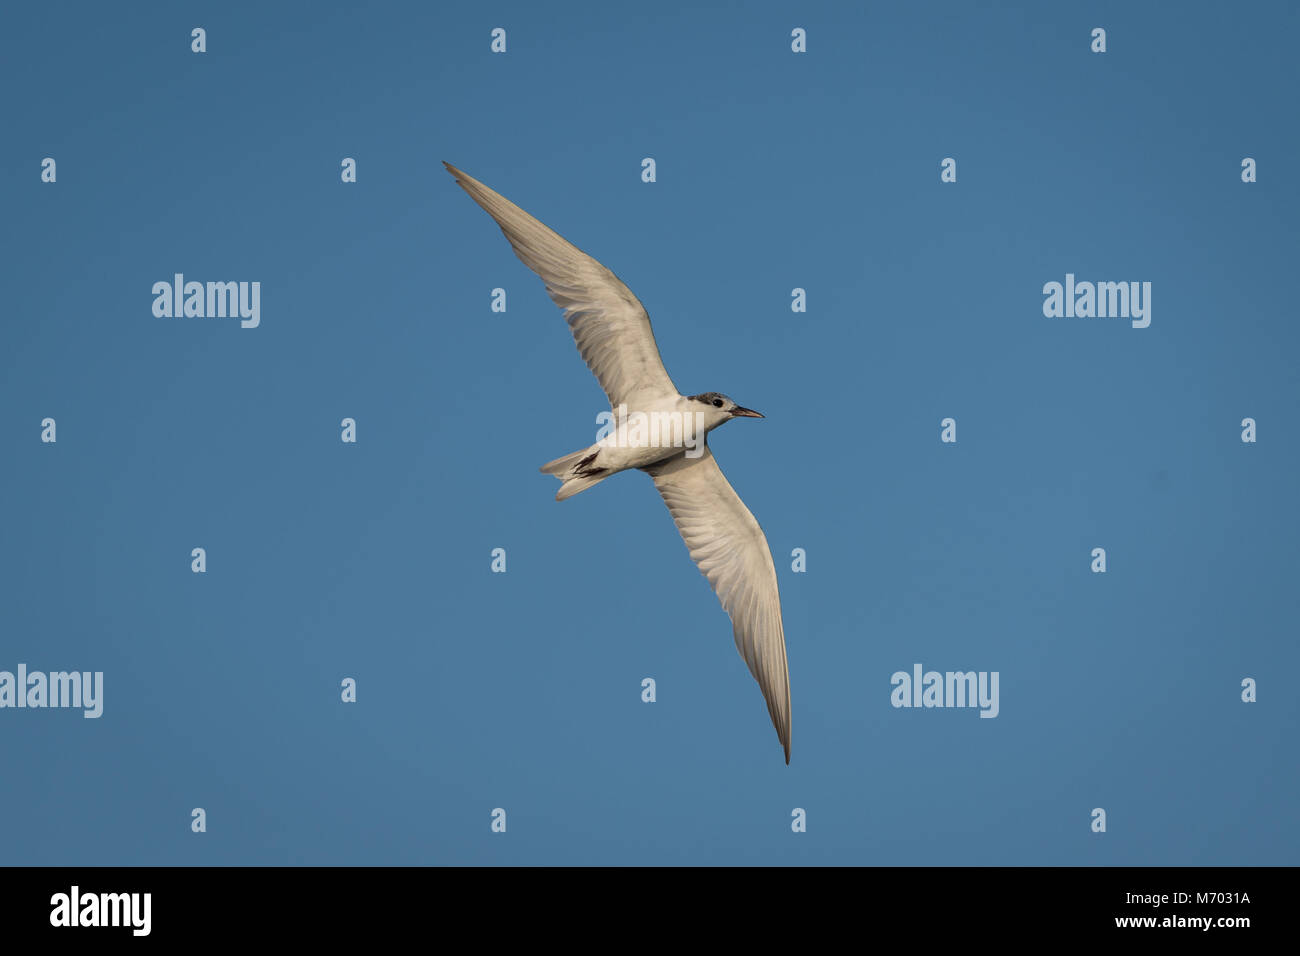 The little tern (Sternula albifrons) is a seabird of the family, Laridae. Non-breeding adult in flight. - Stock Image